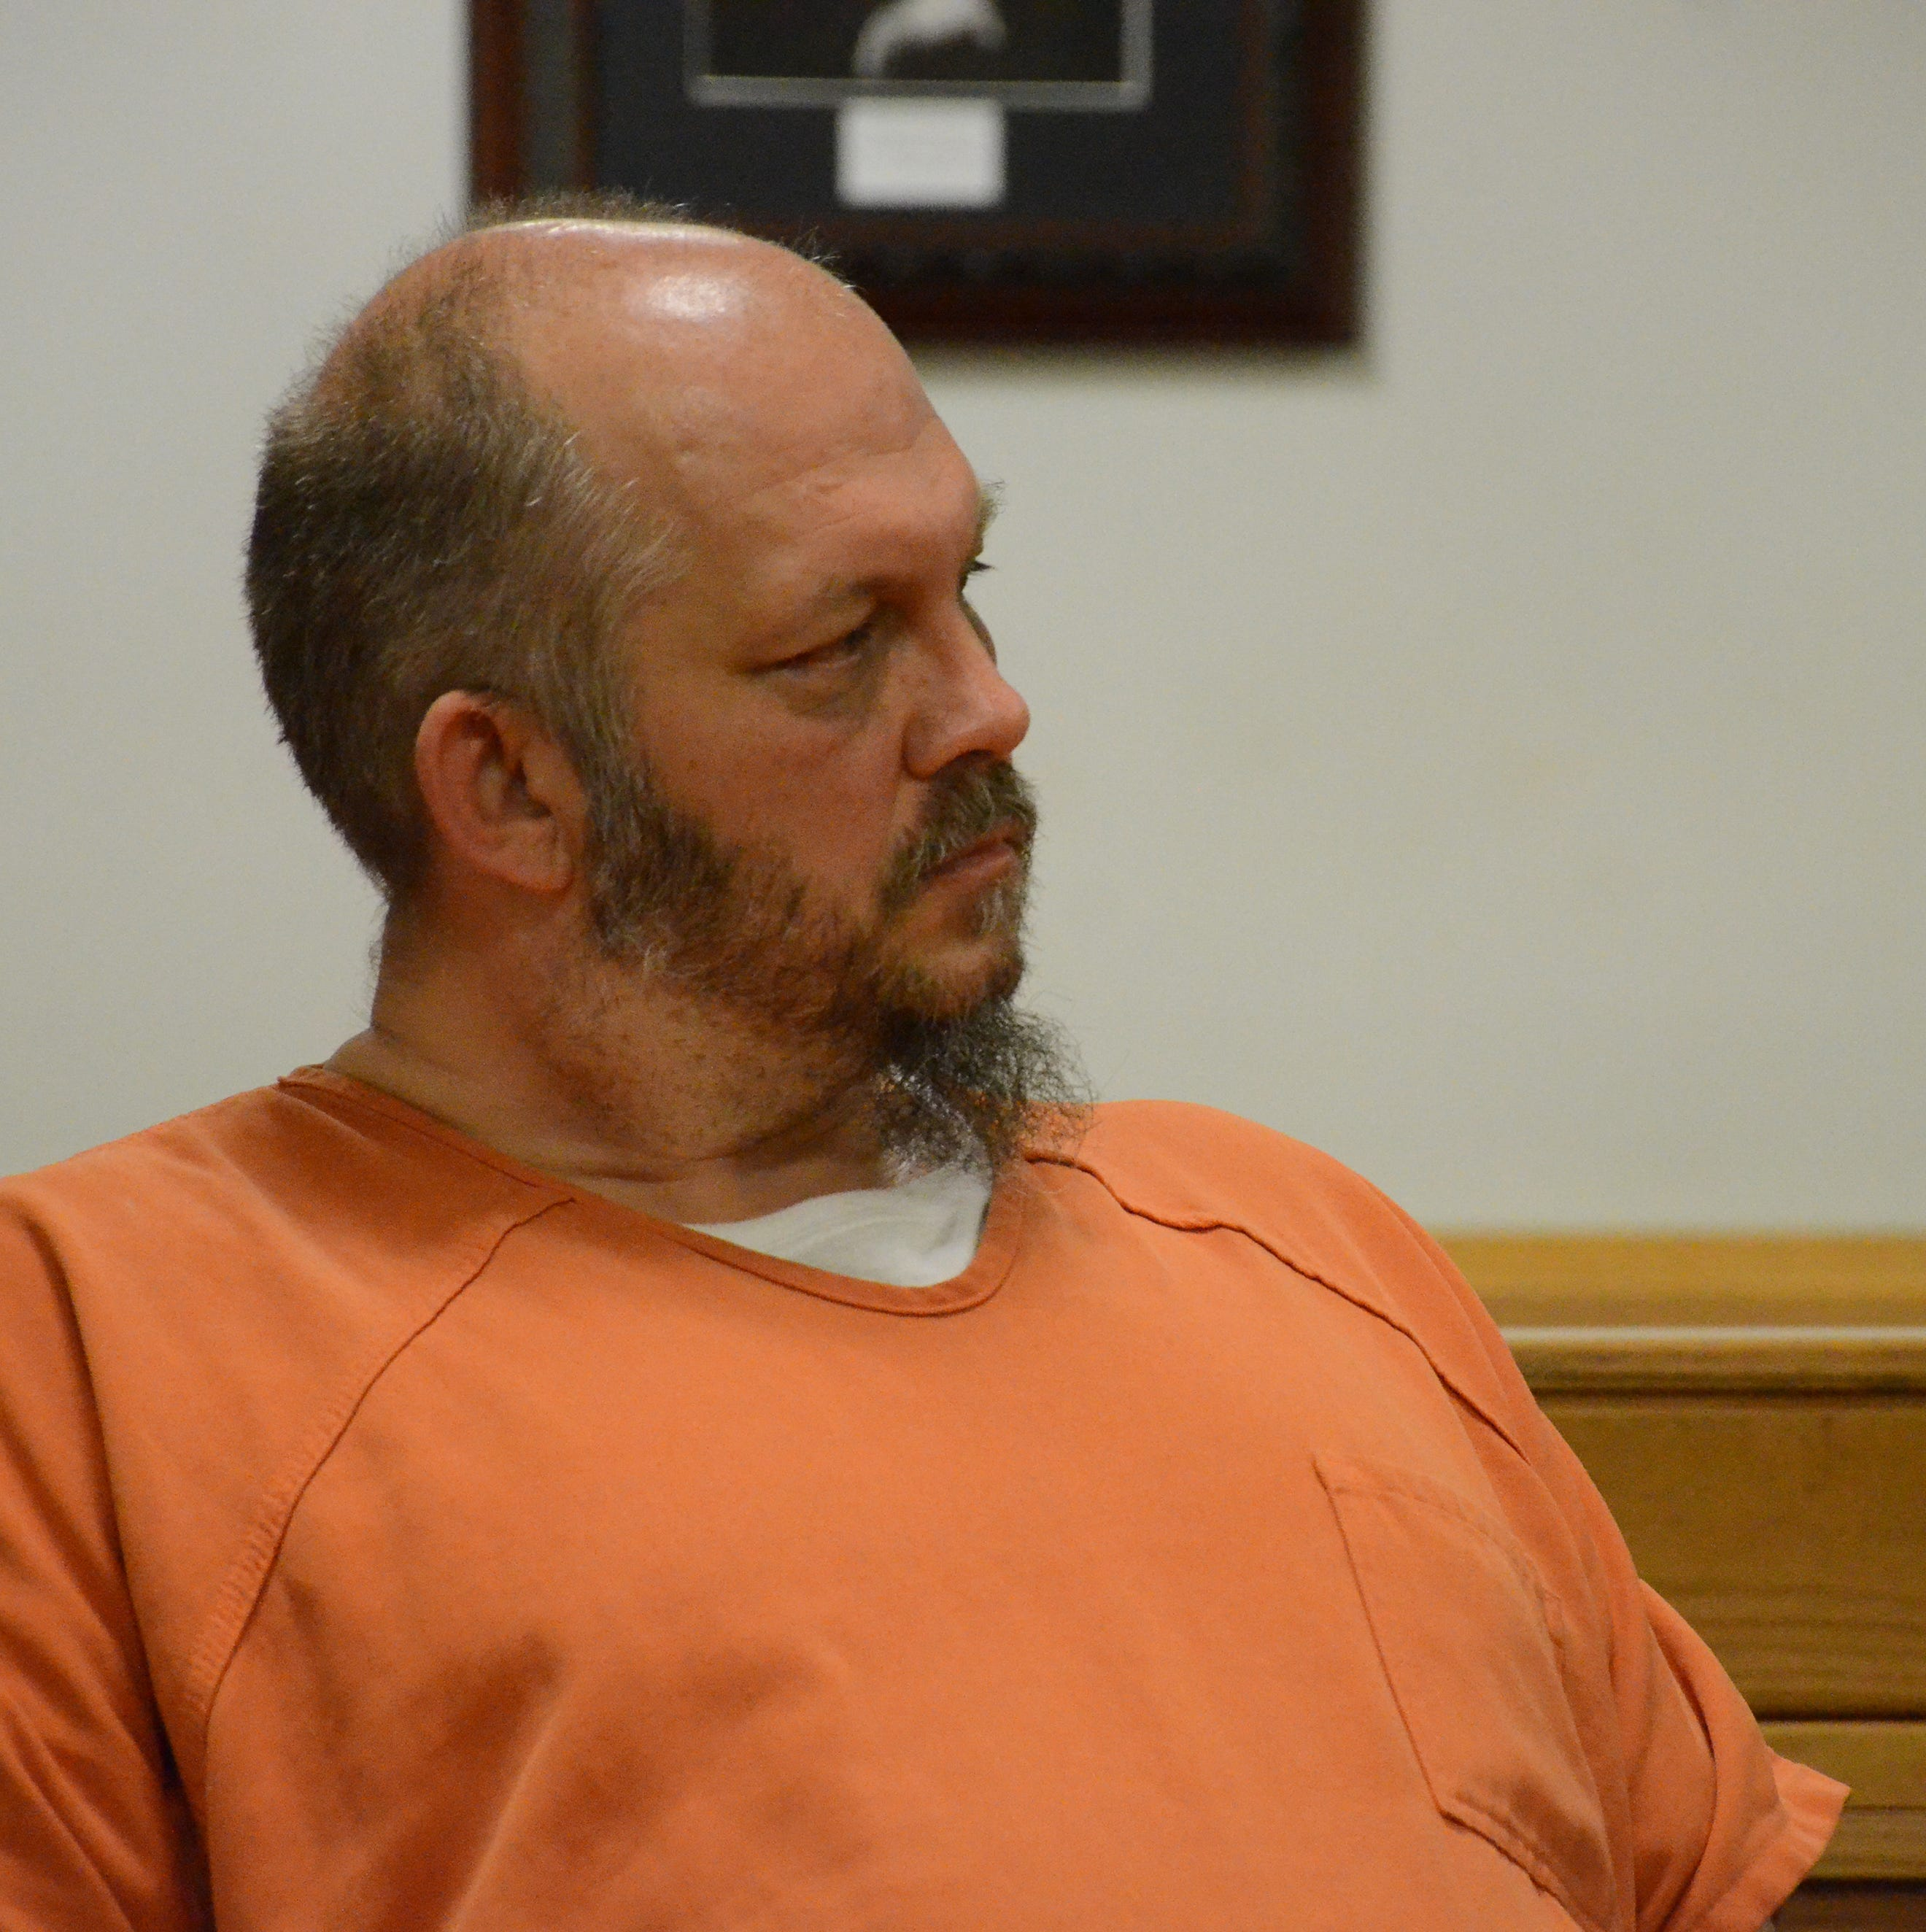 Attorney for Albion man charged with rape attacks credibility of 17-year-old accuser